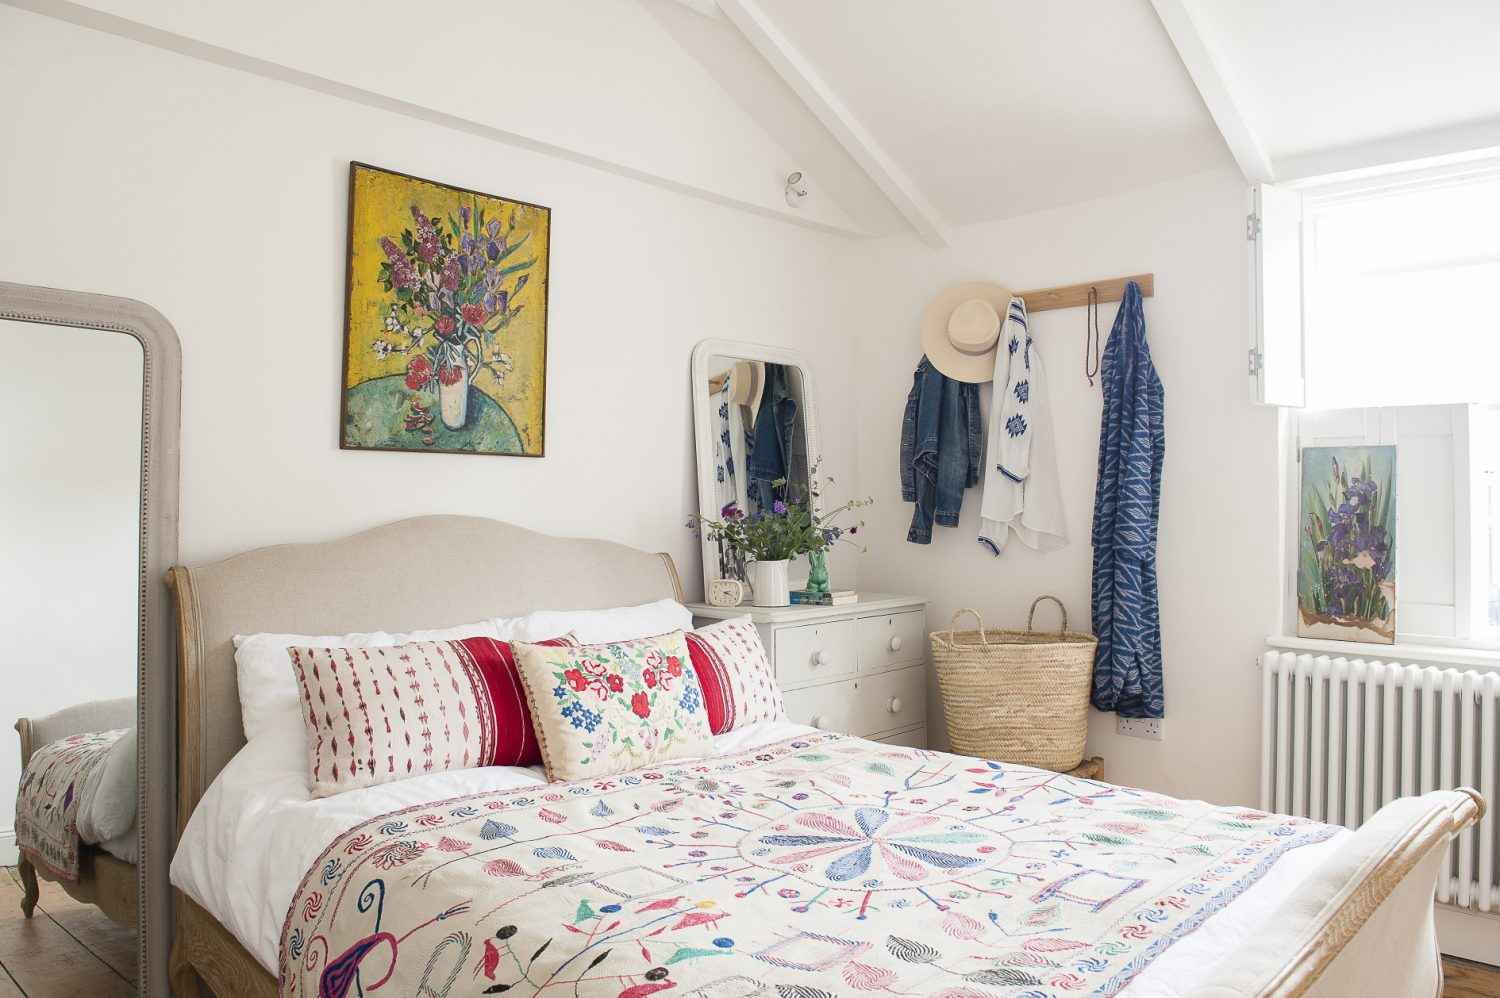 Helen's bedroom is a gloriously pared back 'homage to a Greek bedroom', with white walls and shutters, a bed by Loaf, an Indian quilt and Romanian cushion and paintings from a fellow Norman Road trader